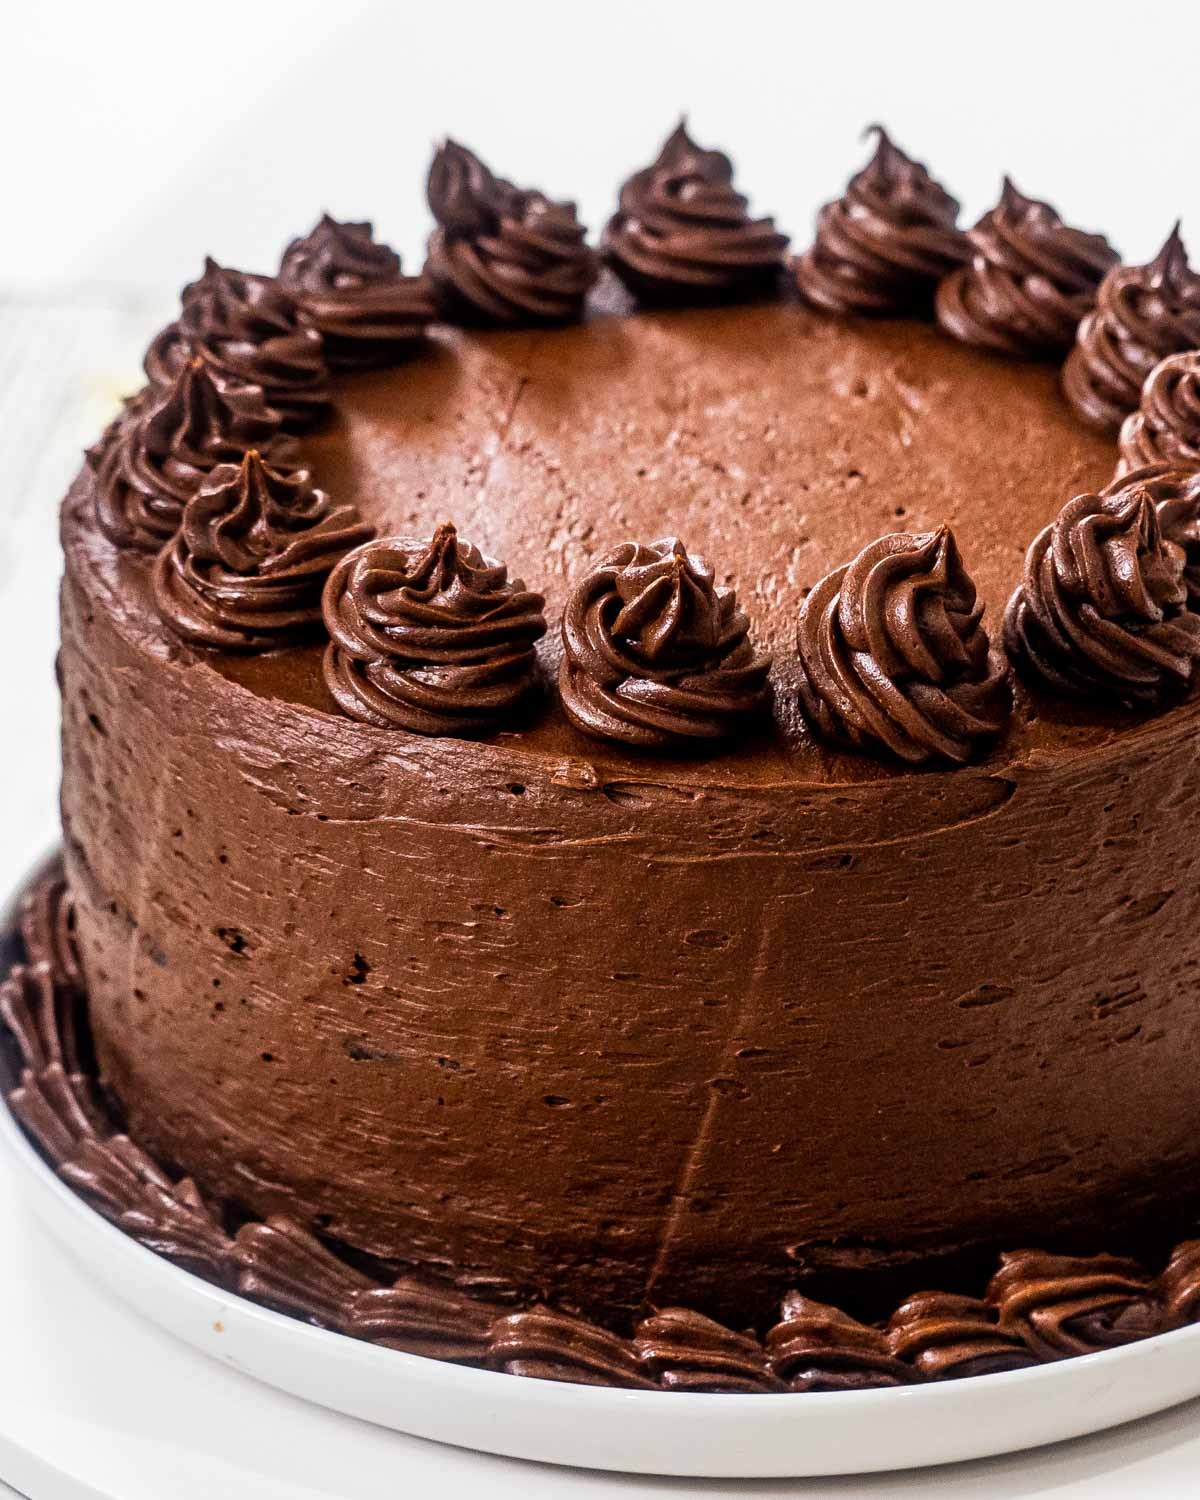 a chocolate cake frosted with chocolate frosting.